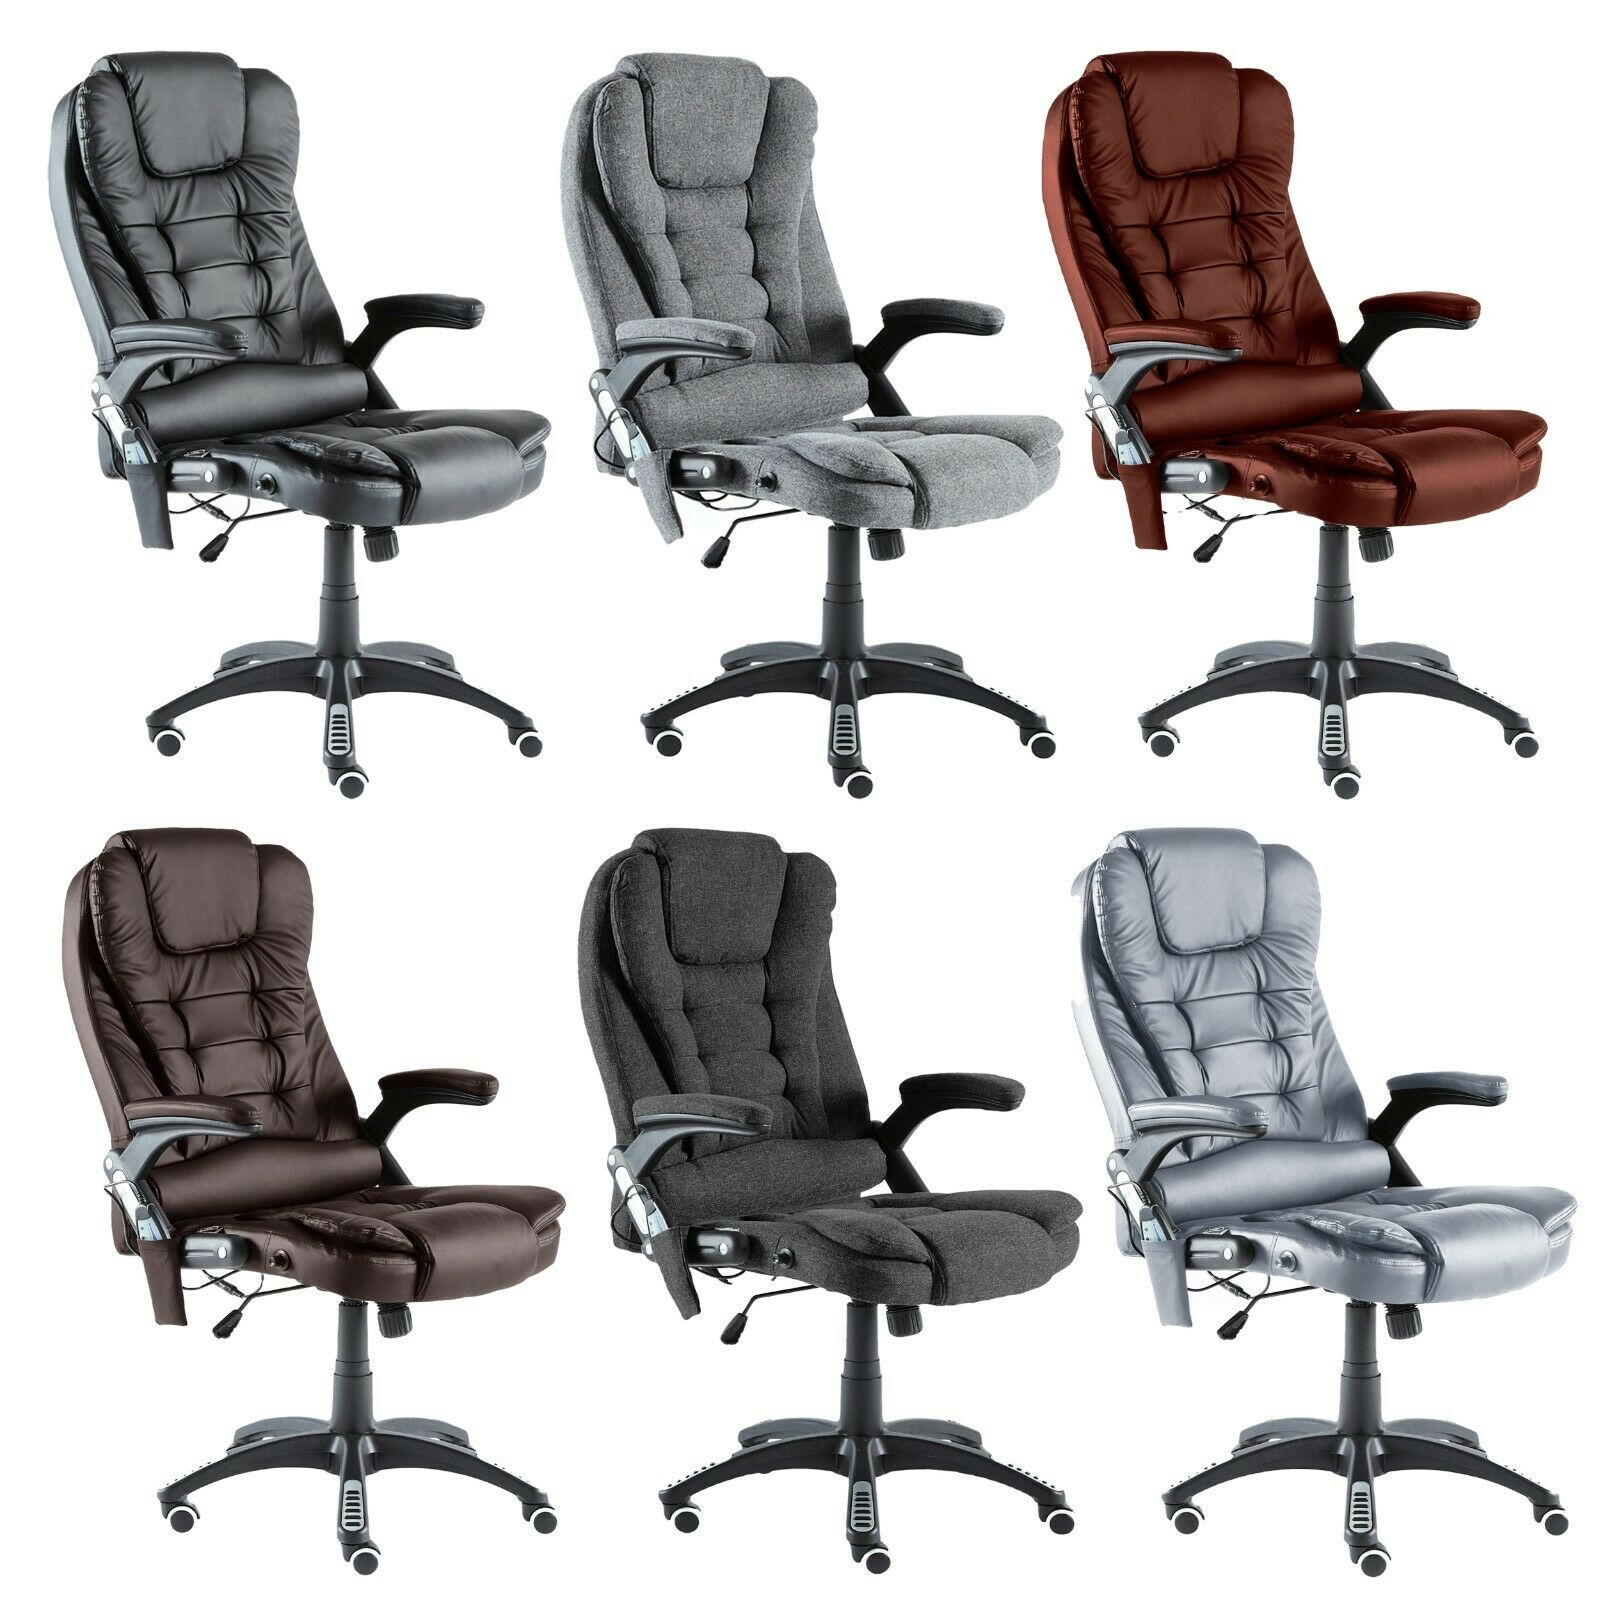 Computer Games - Neo Executive Gaming Computer Desk Office Swivel Recliner Massage Chair